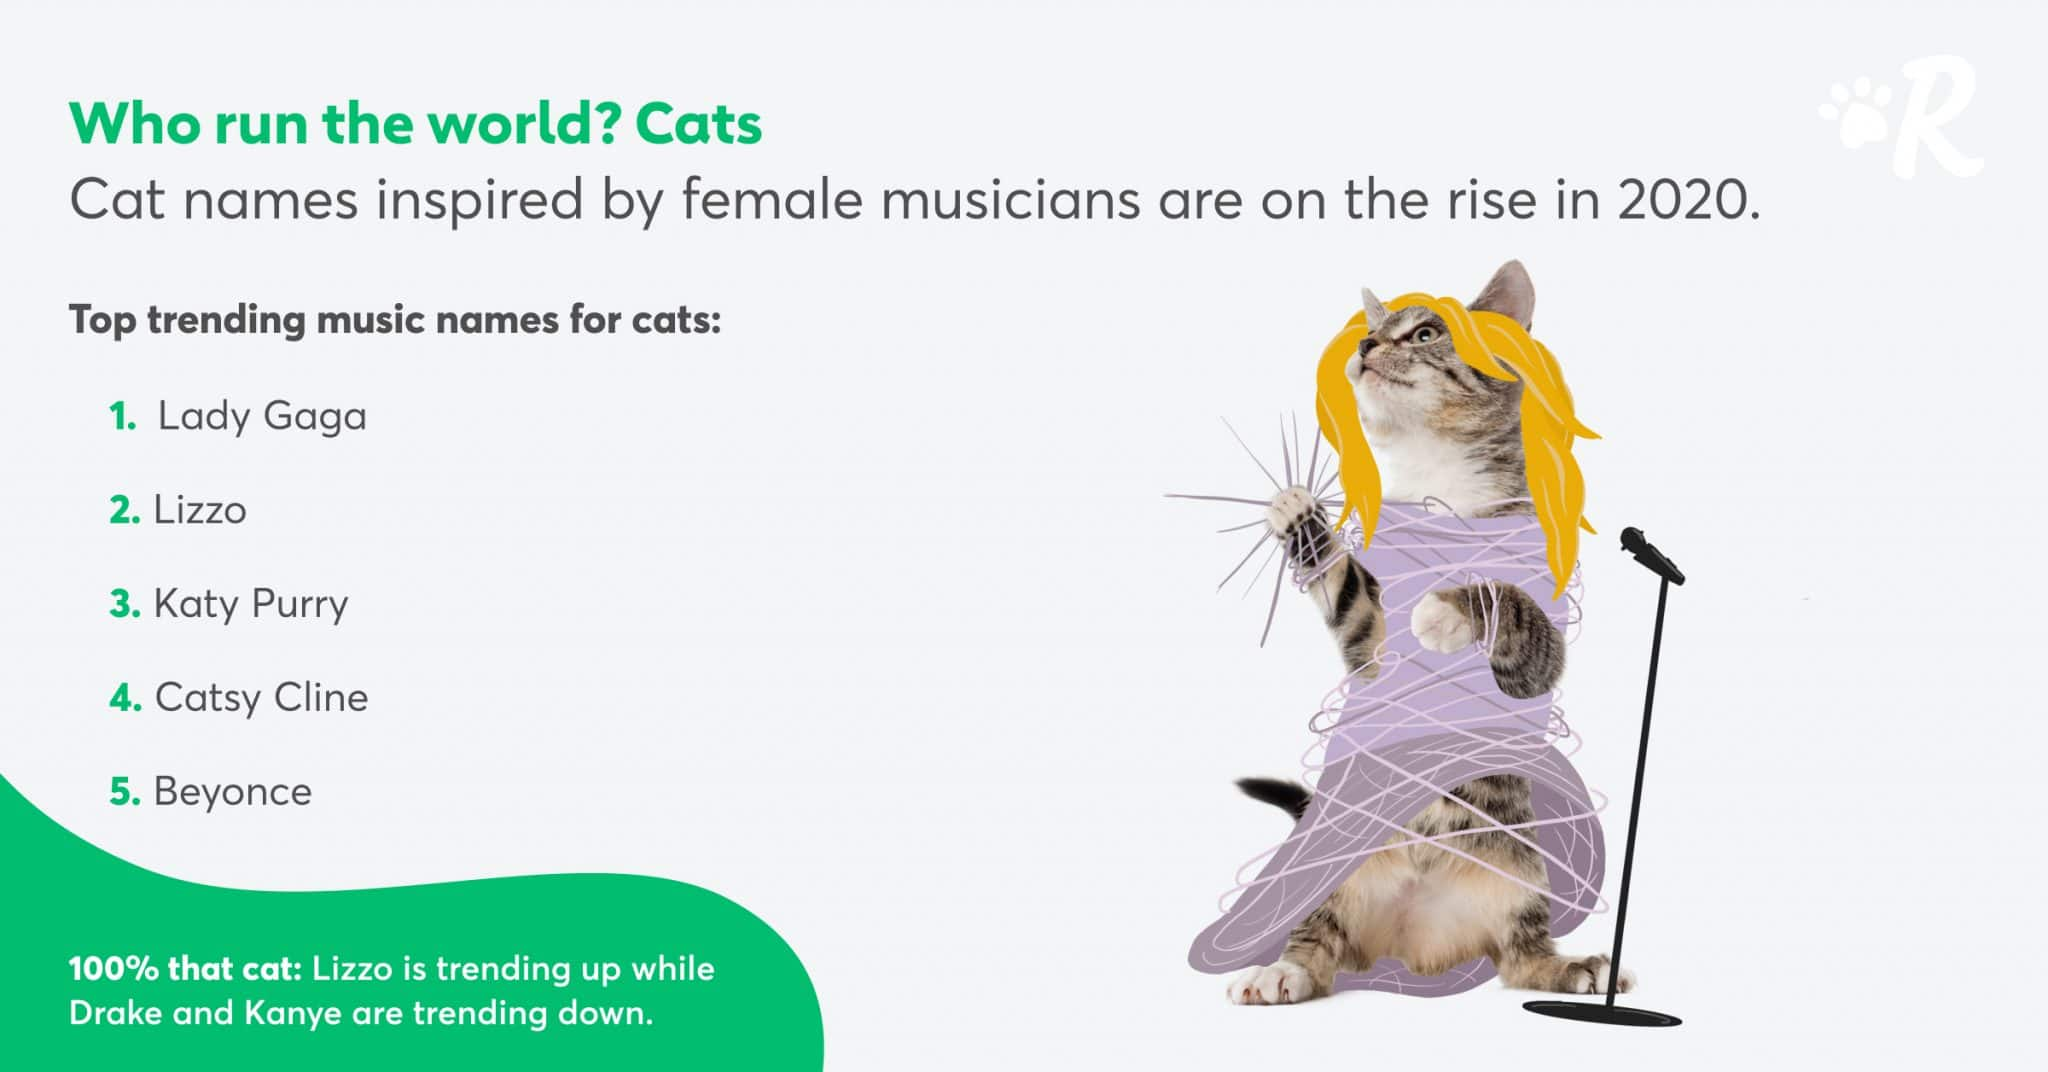 An infographic showing top music-inspired cat names of 2020